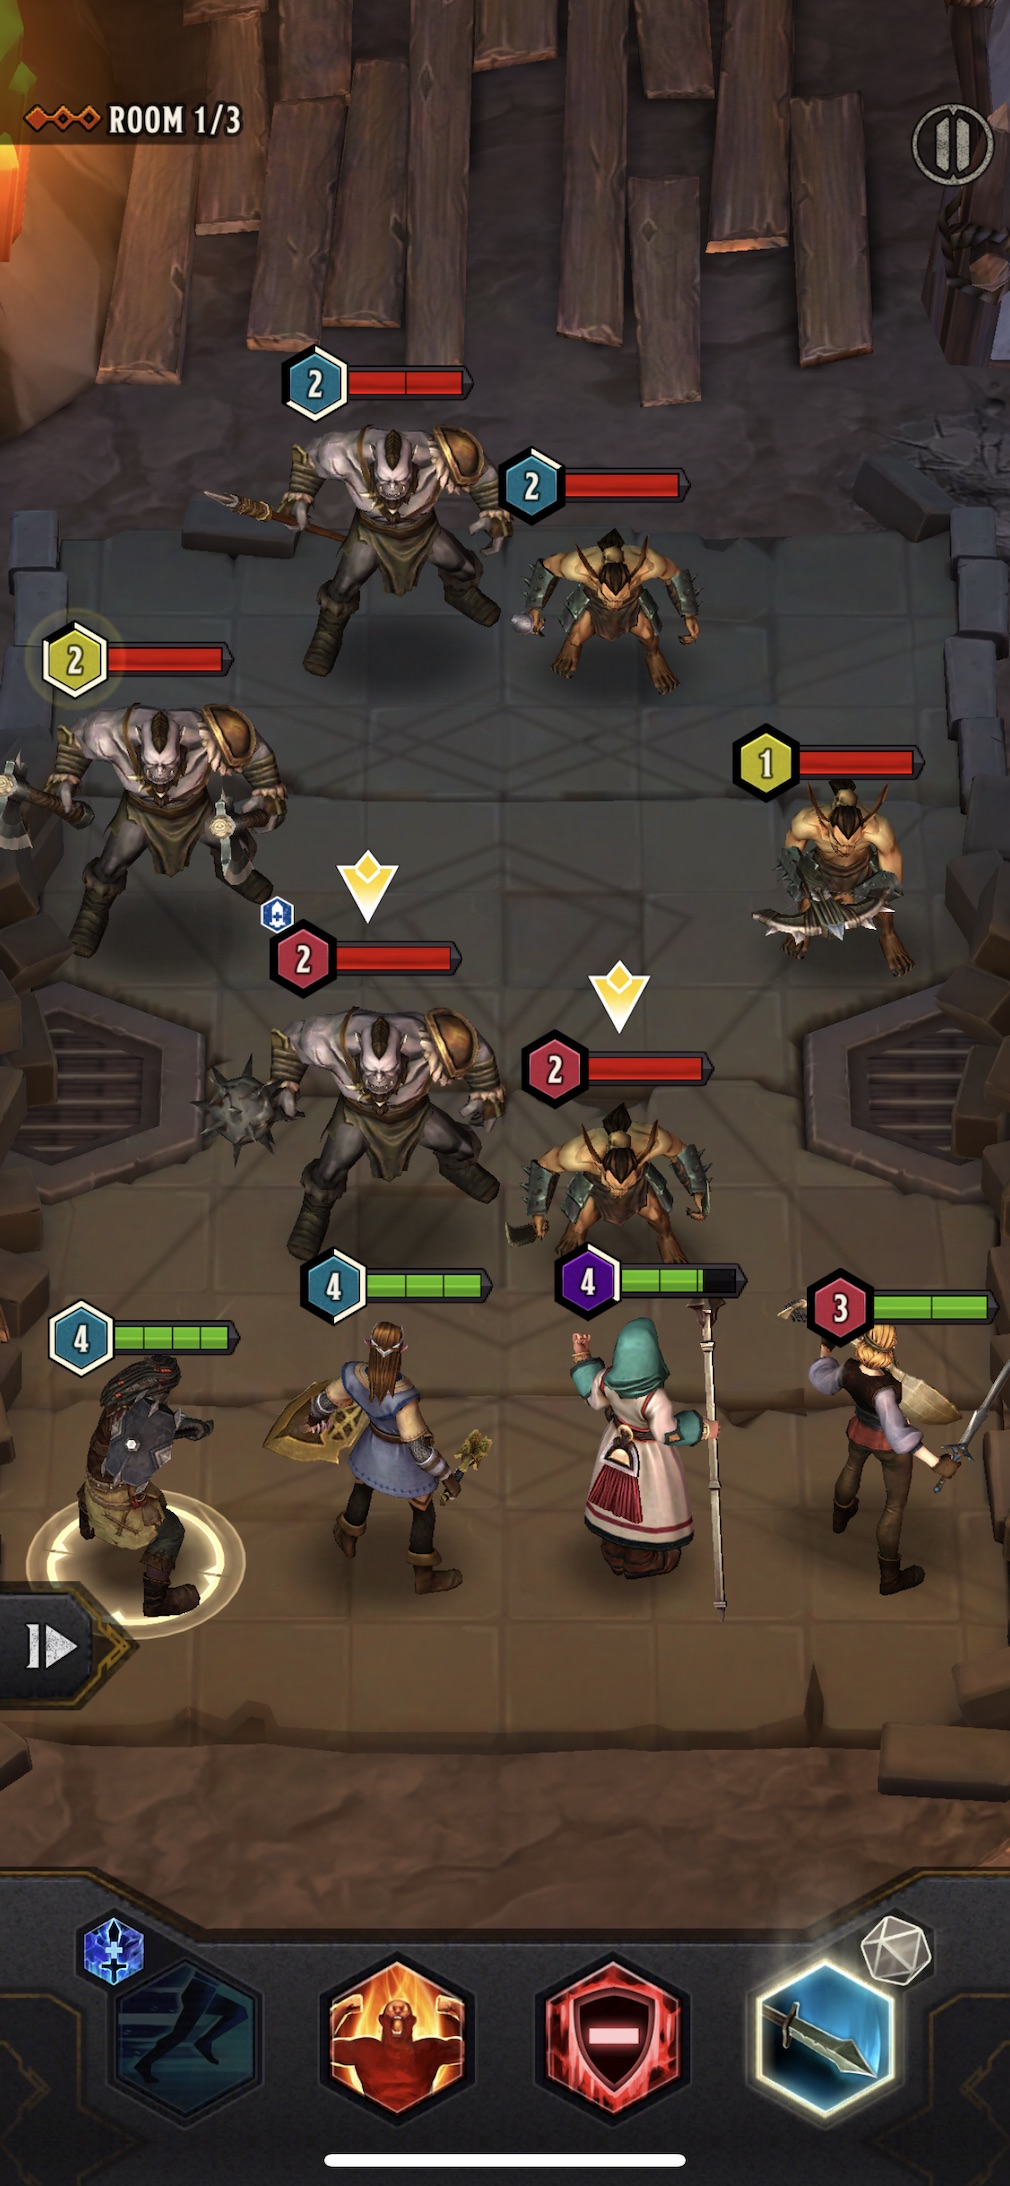 Warriors of Waterdeep iOS screenshot - A fight underground